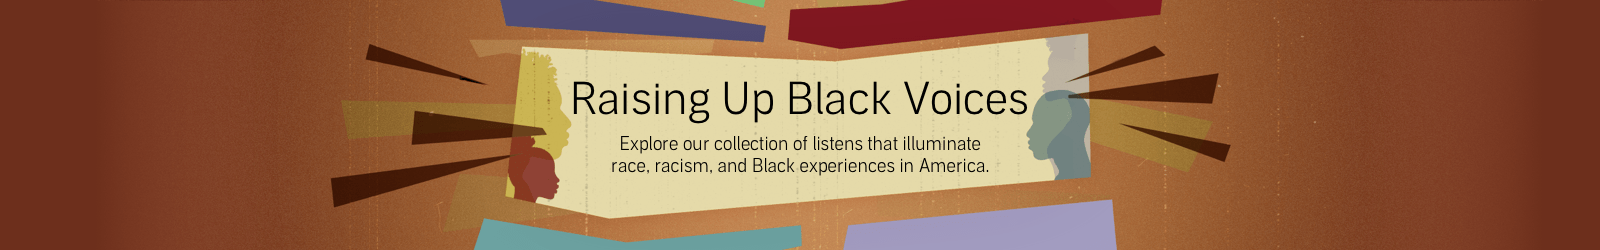 Raising Raising Up Black Voices. Explore our collection of listens that illuminate race, racism, and Black experiences in America.